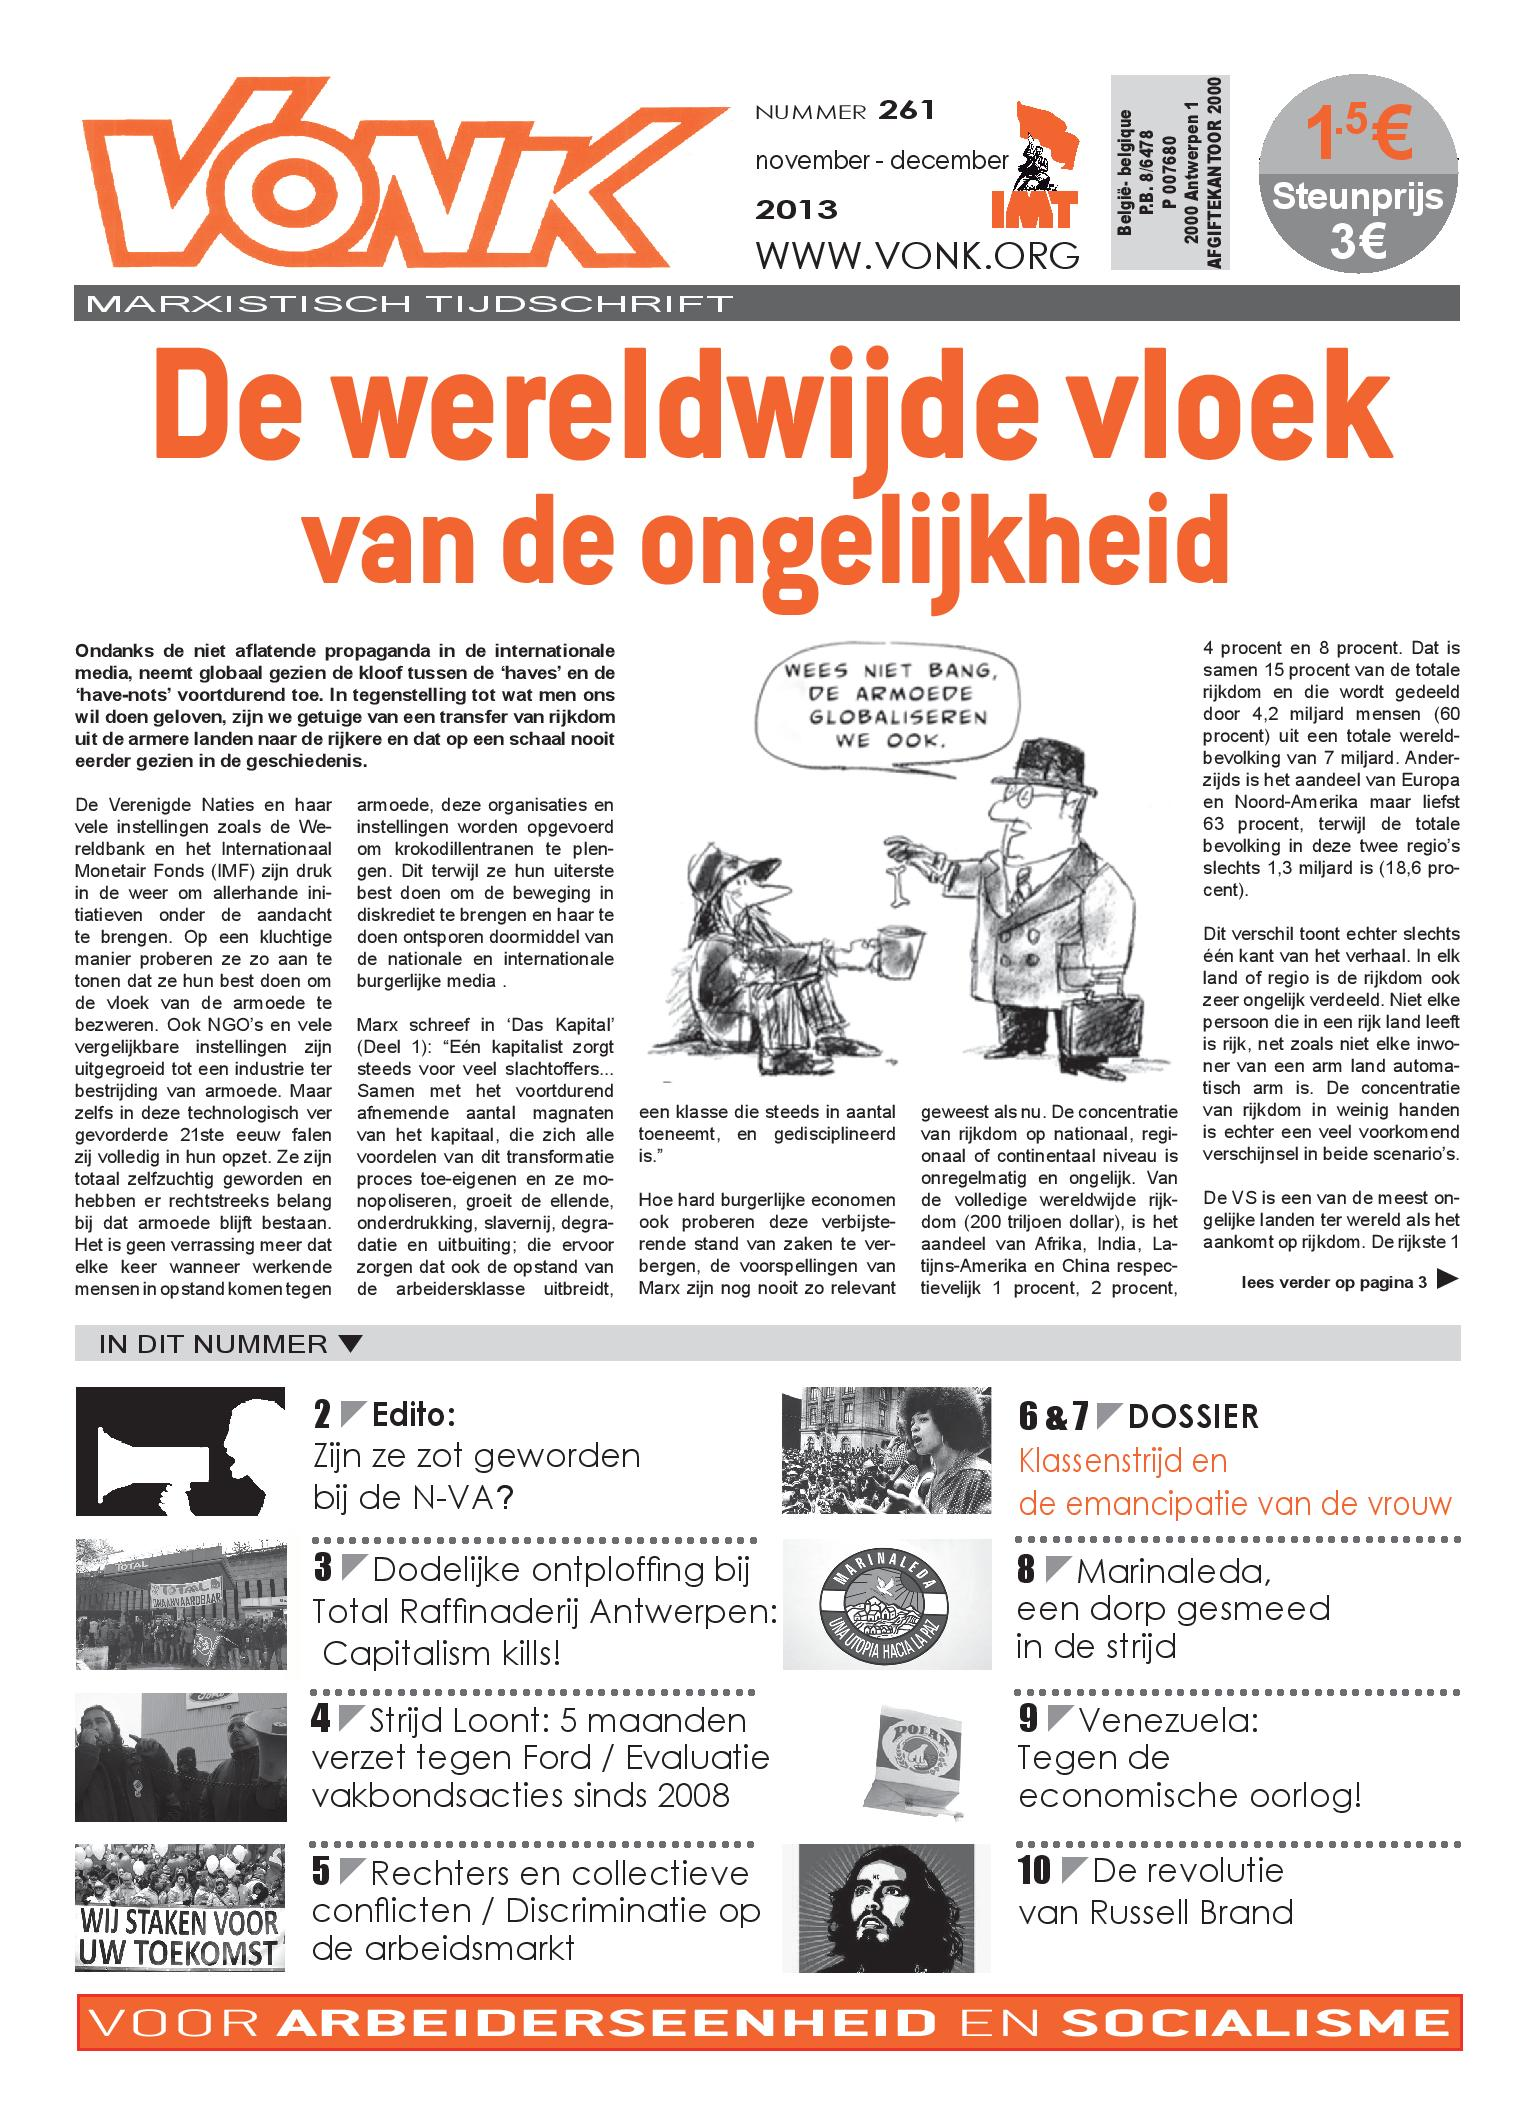 Cover Vonk 261 november-december 2013 -page-001